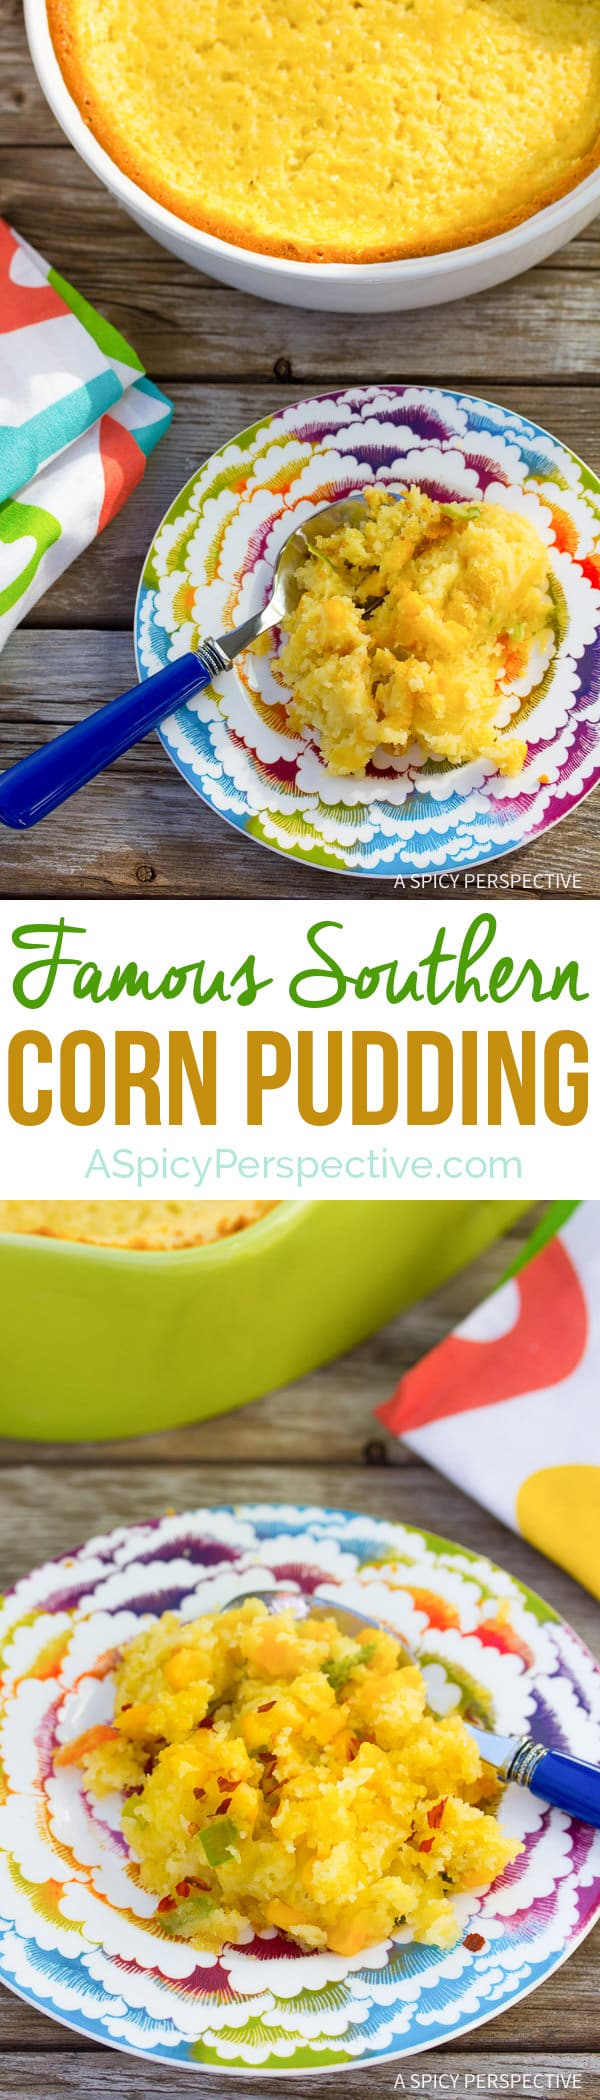 """Try this for the holidays - Famous Corn Pudding Recipe on ASpicyPerspective.com. Known as """"Damn Good Corn Pudding"""" in Asheville, NC. #thanksgiving"""